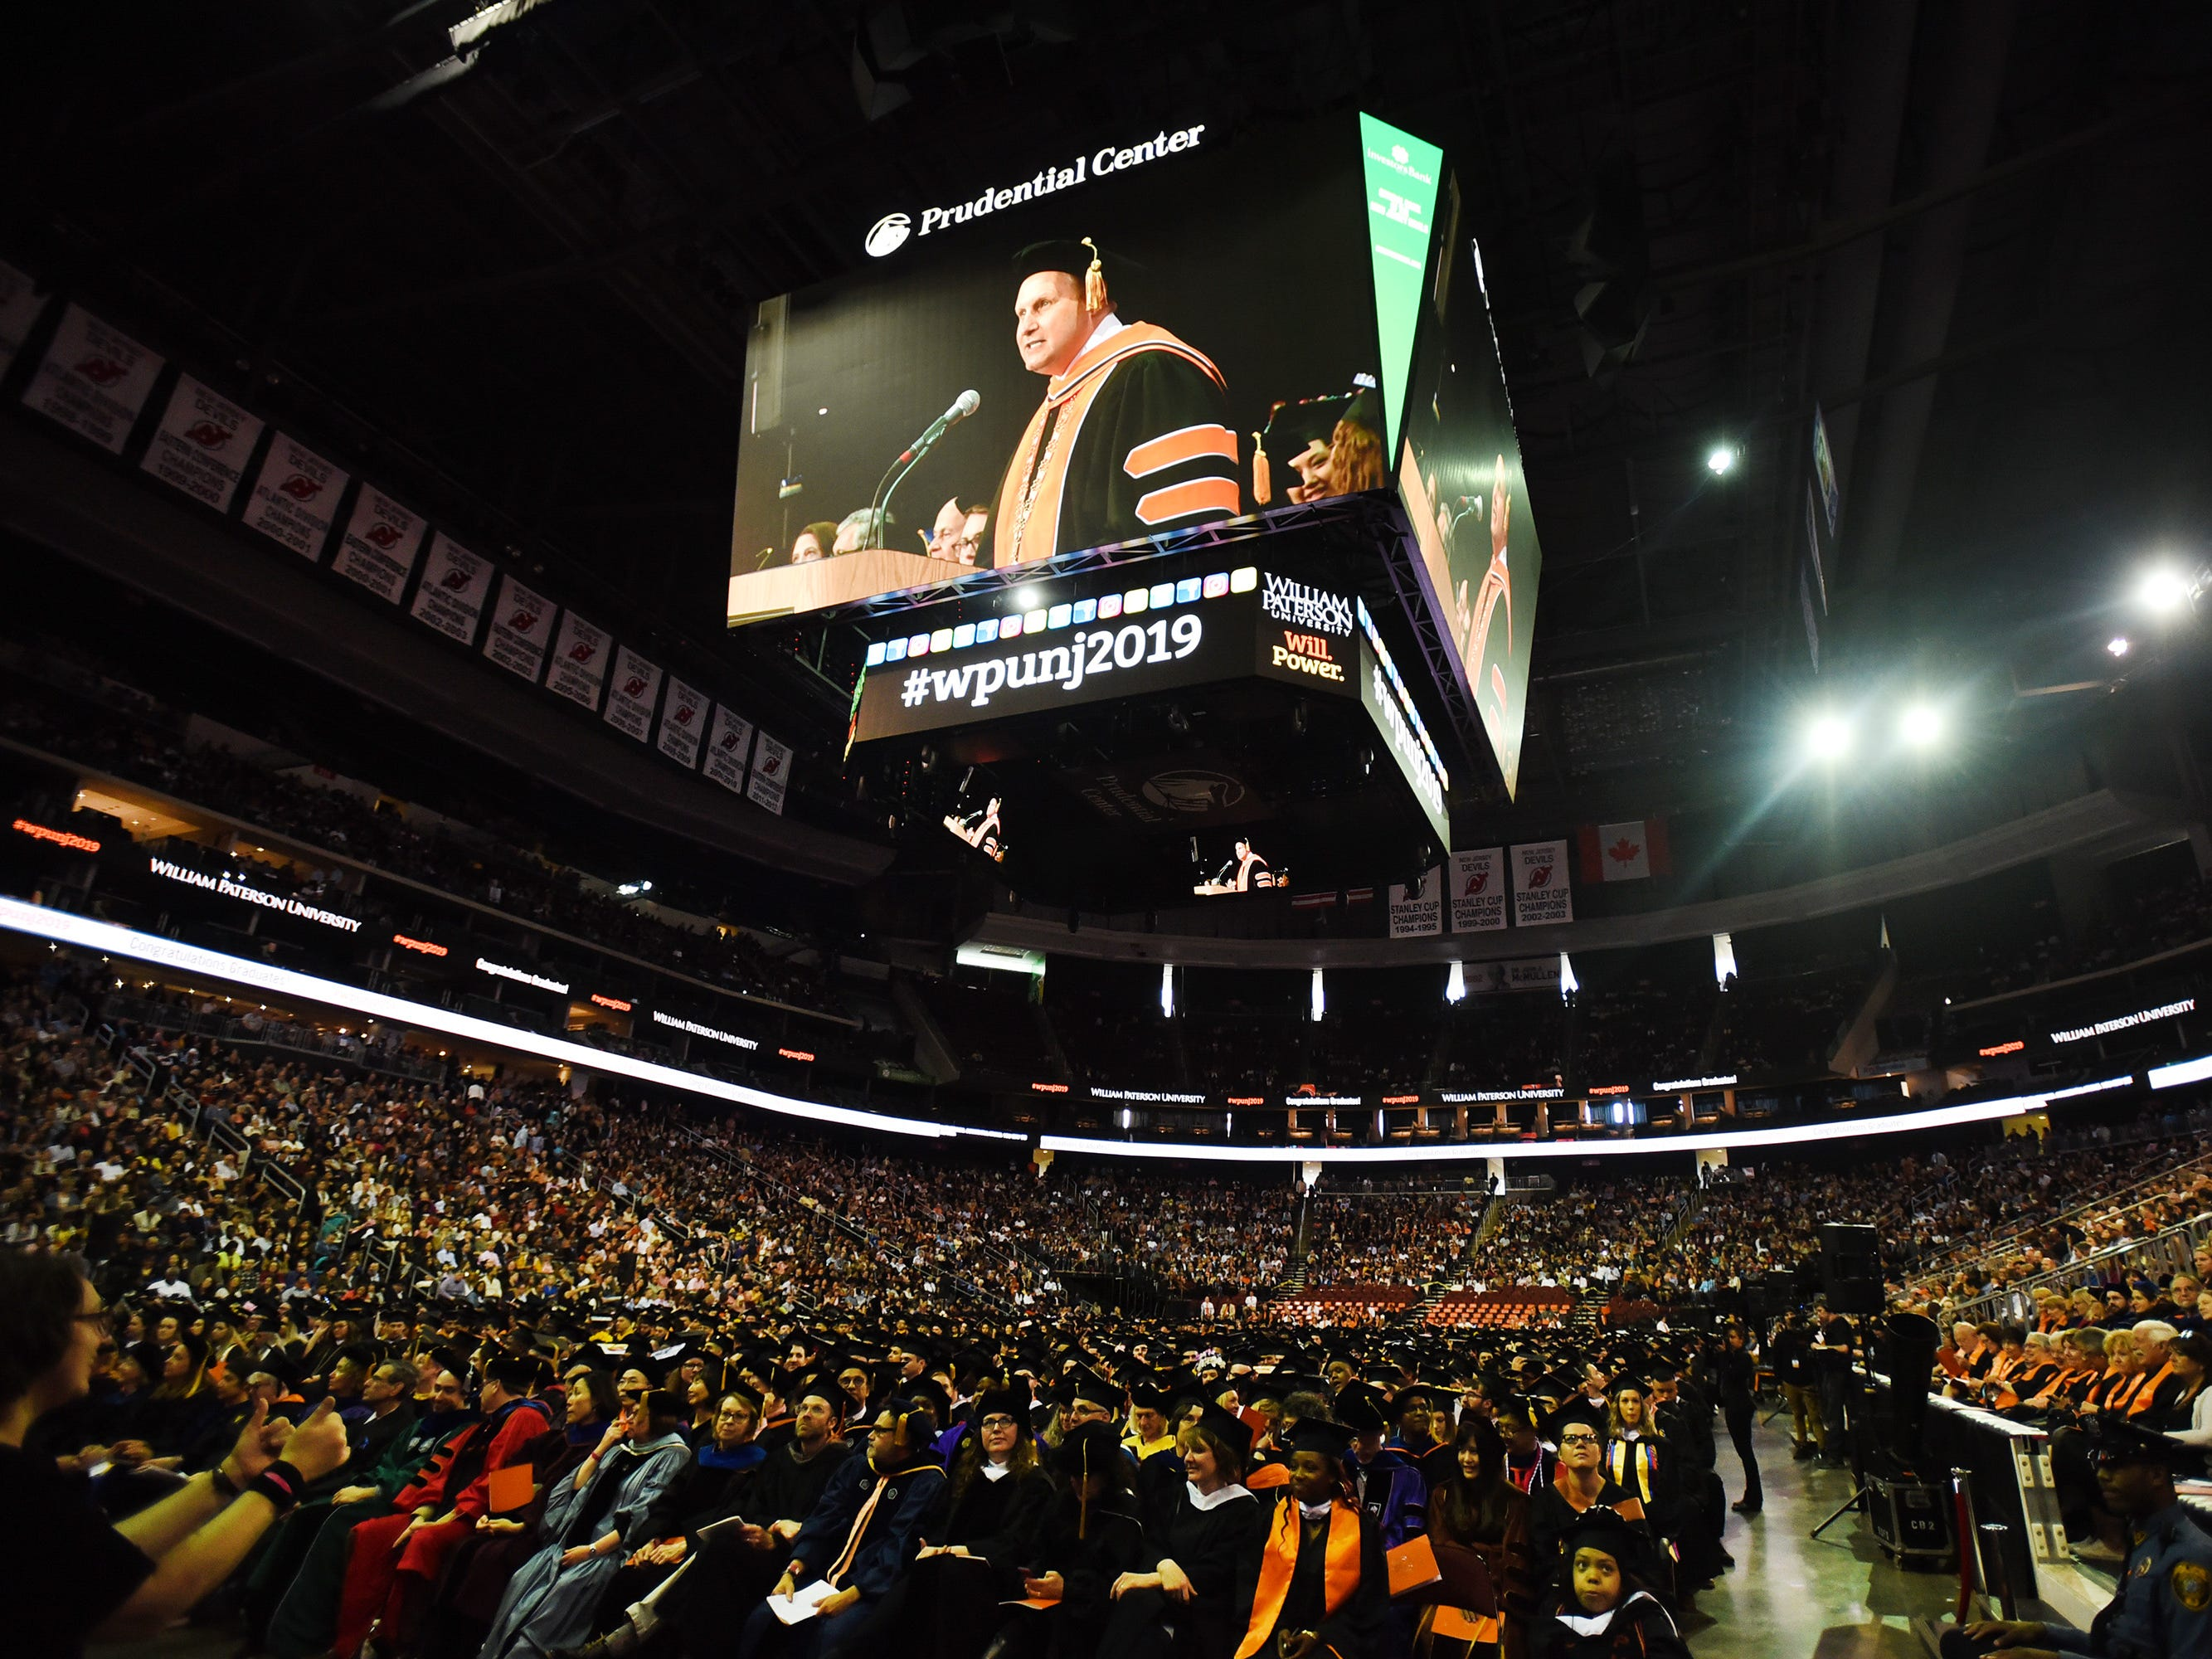 Richard J. Helldobler, PhD, President of the University, is seen on the overhead screen as he gives a a speech during the William Paterson University 2019 Commencement at the Prudential Center in Newark on 05/15/19.